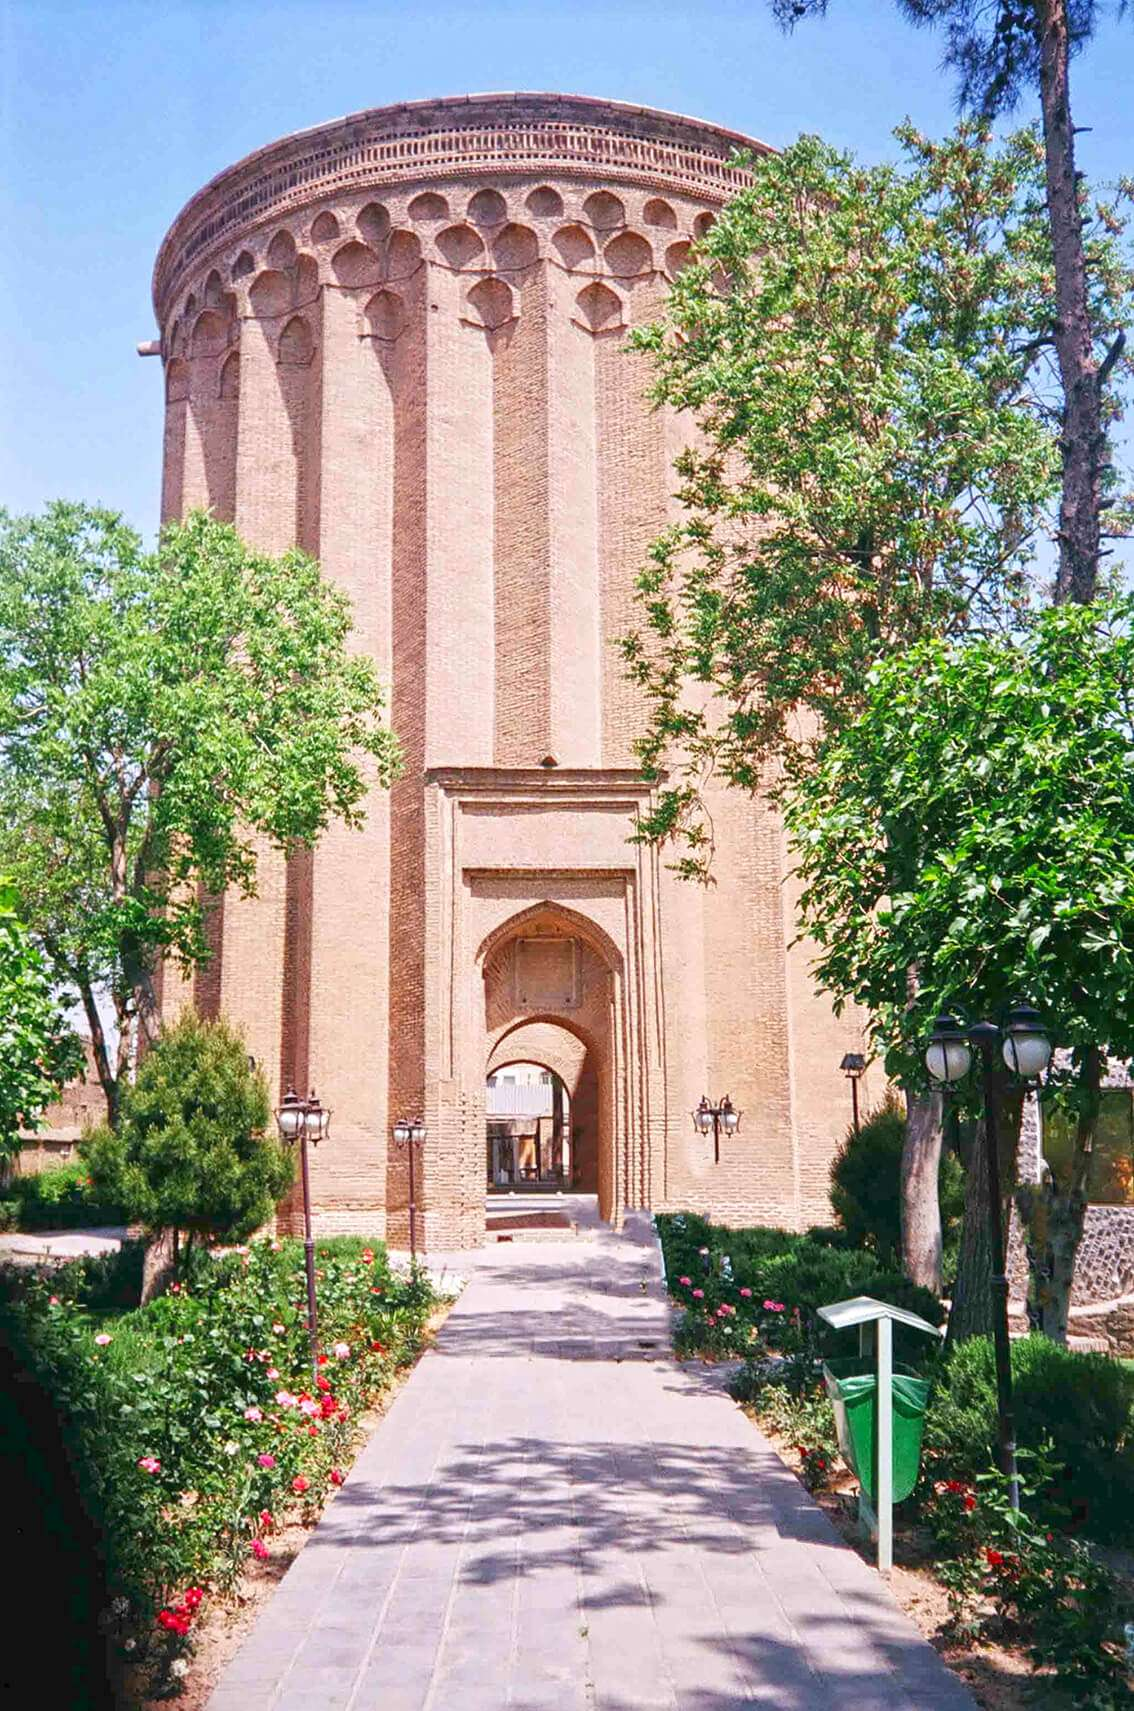 The Soaring Towers of Iranian Civilization